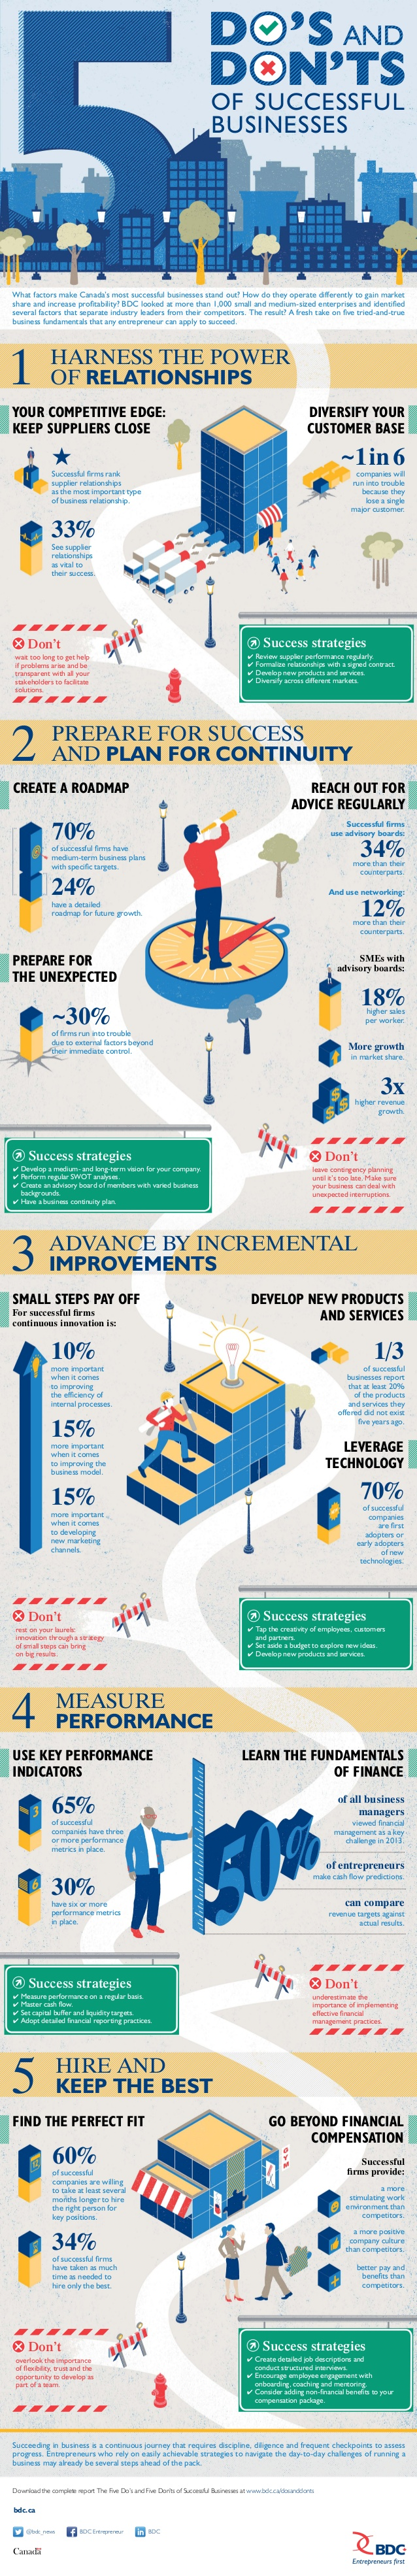 5-dos-and-donts-of-successful-businesses-sbw2014-1-638